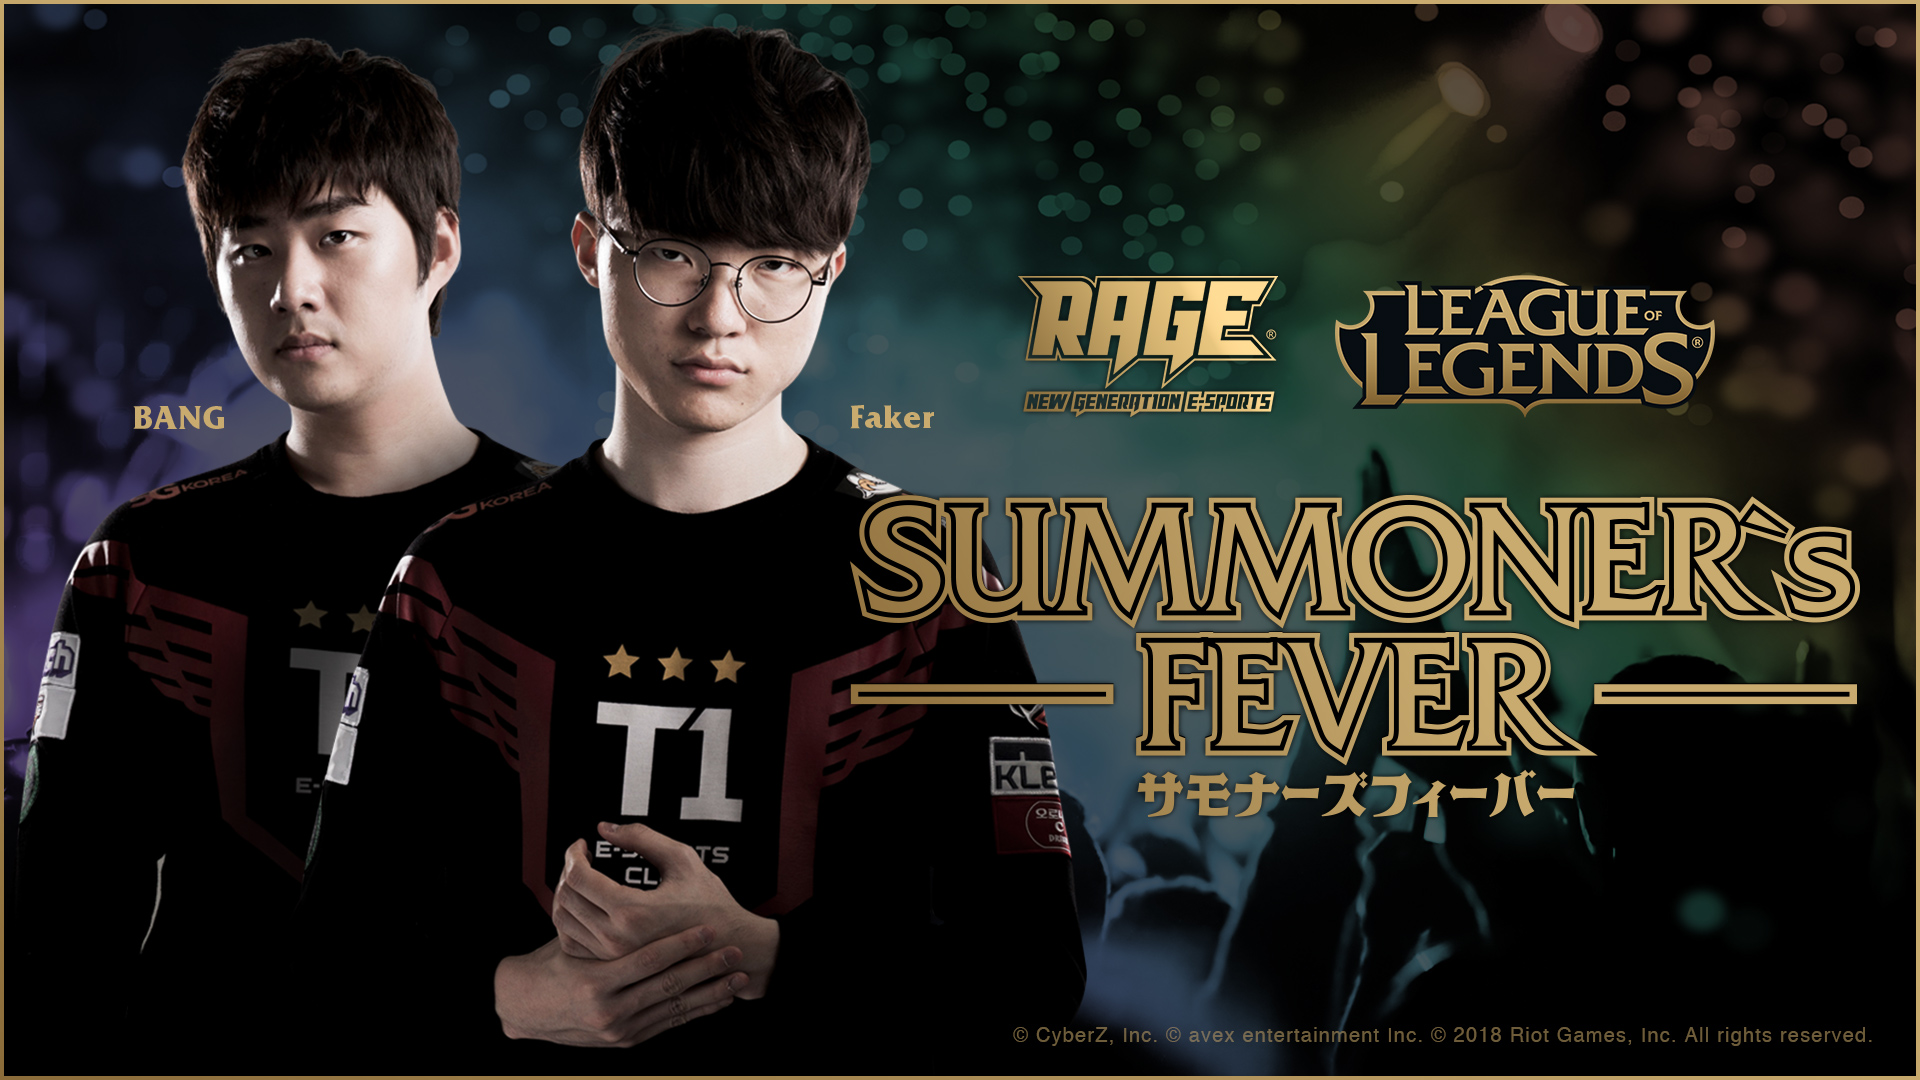 RAGE 2018 Winter「RAGE LoL SUMMONER's FEVER」